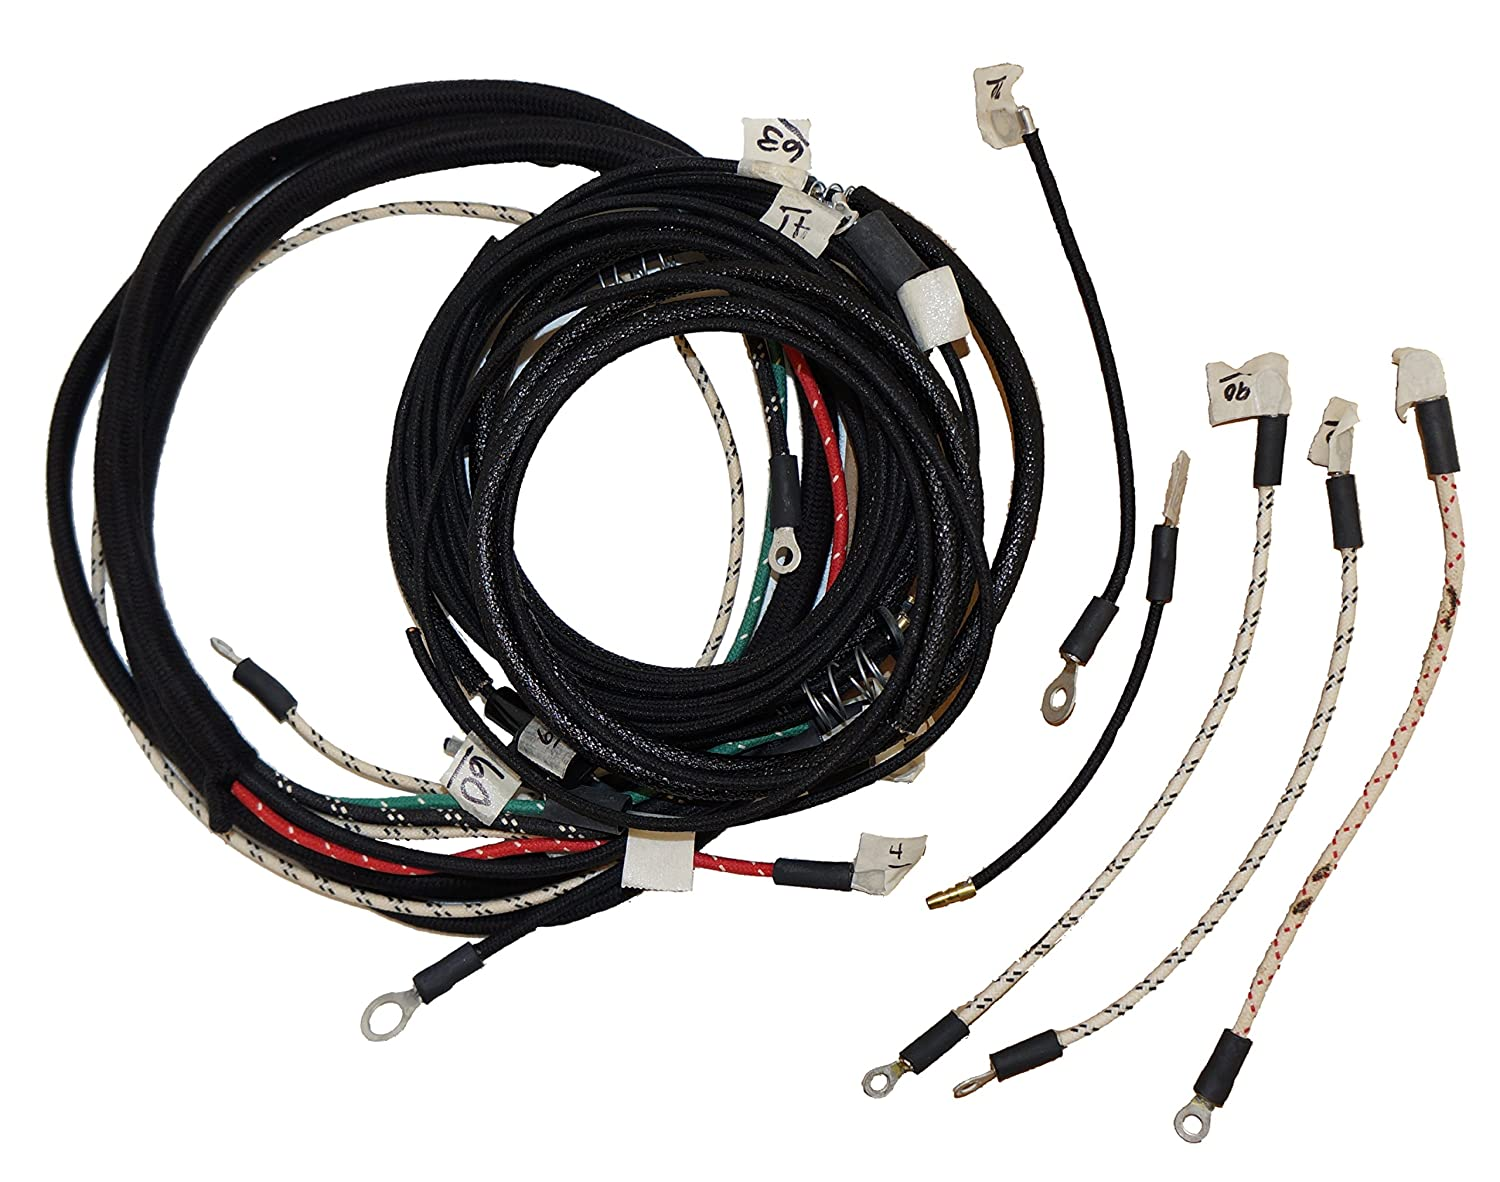 Amazon.com: DJS Tractor Parts / Allis Chalmers WD, WD45 gas - Complete Wiring  Harness - AC-331D: Industrial & Scientific